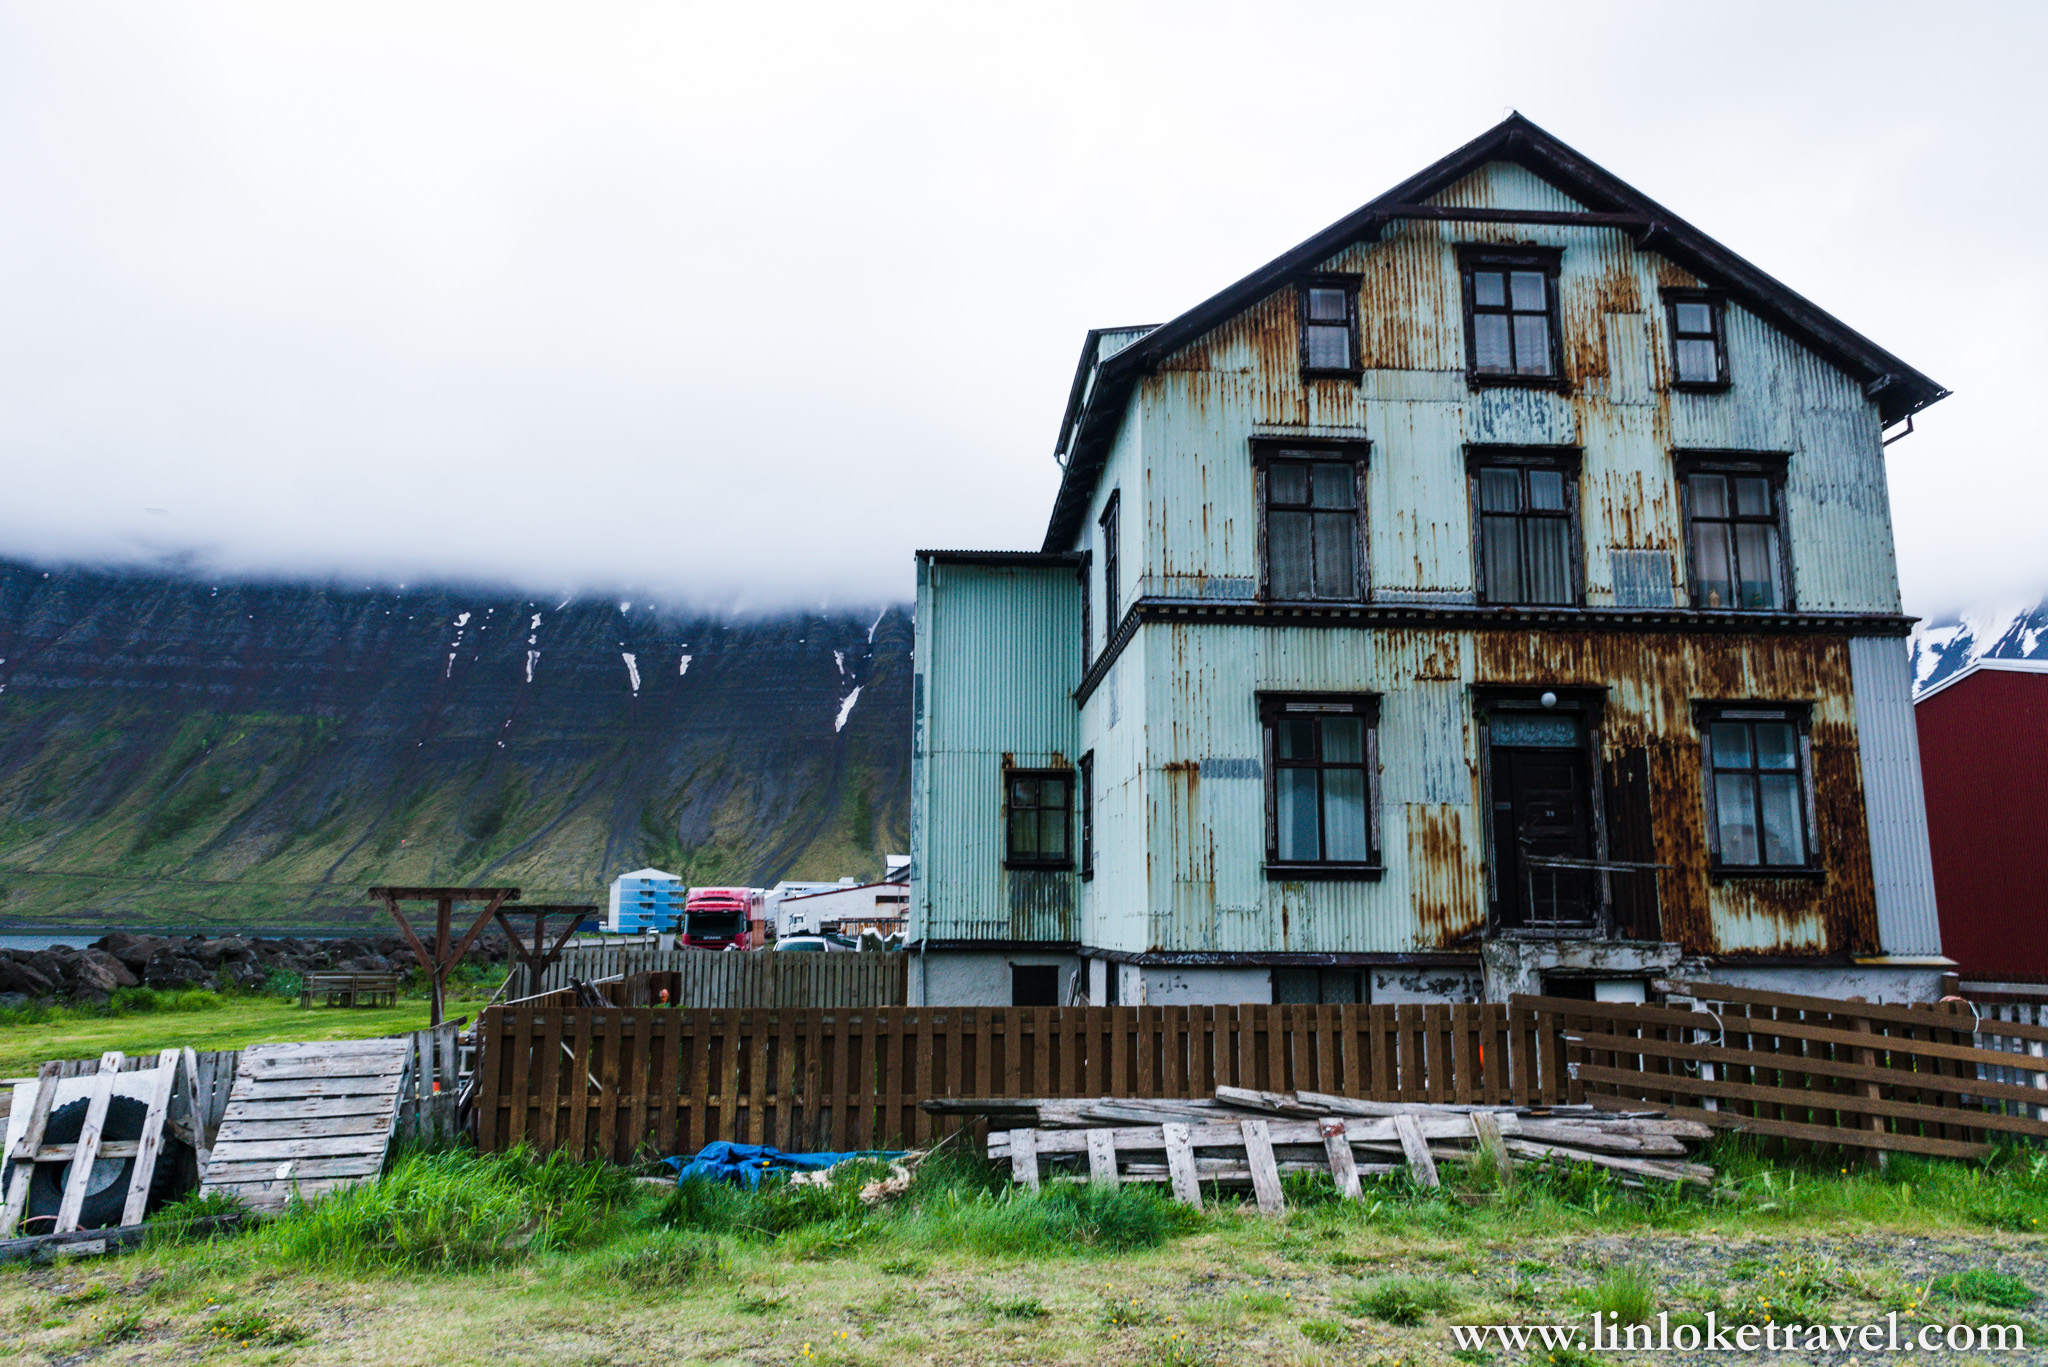 It is not uncommon to spot rusty, dilapidated houses here in Isafjordur